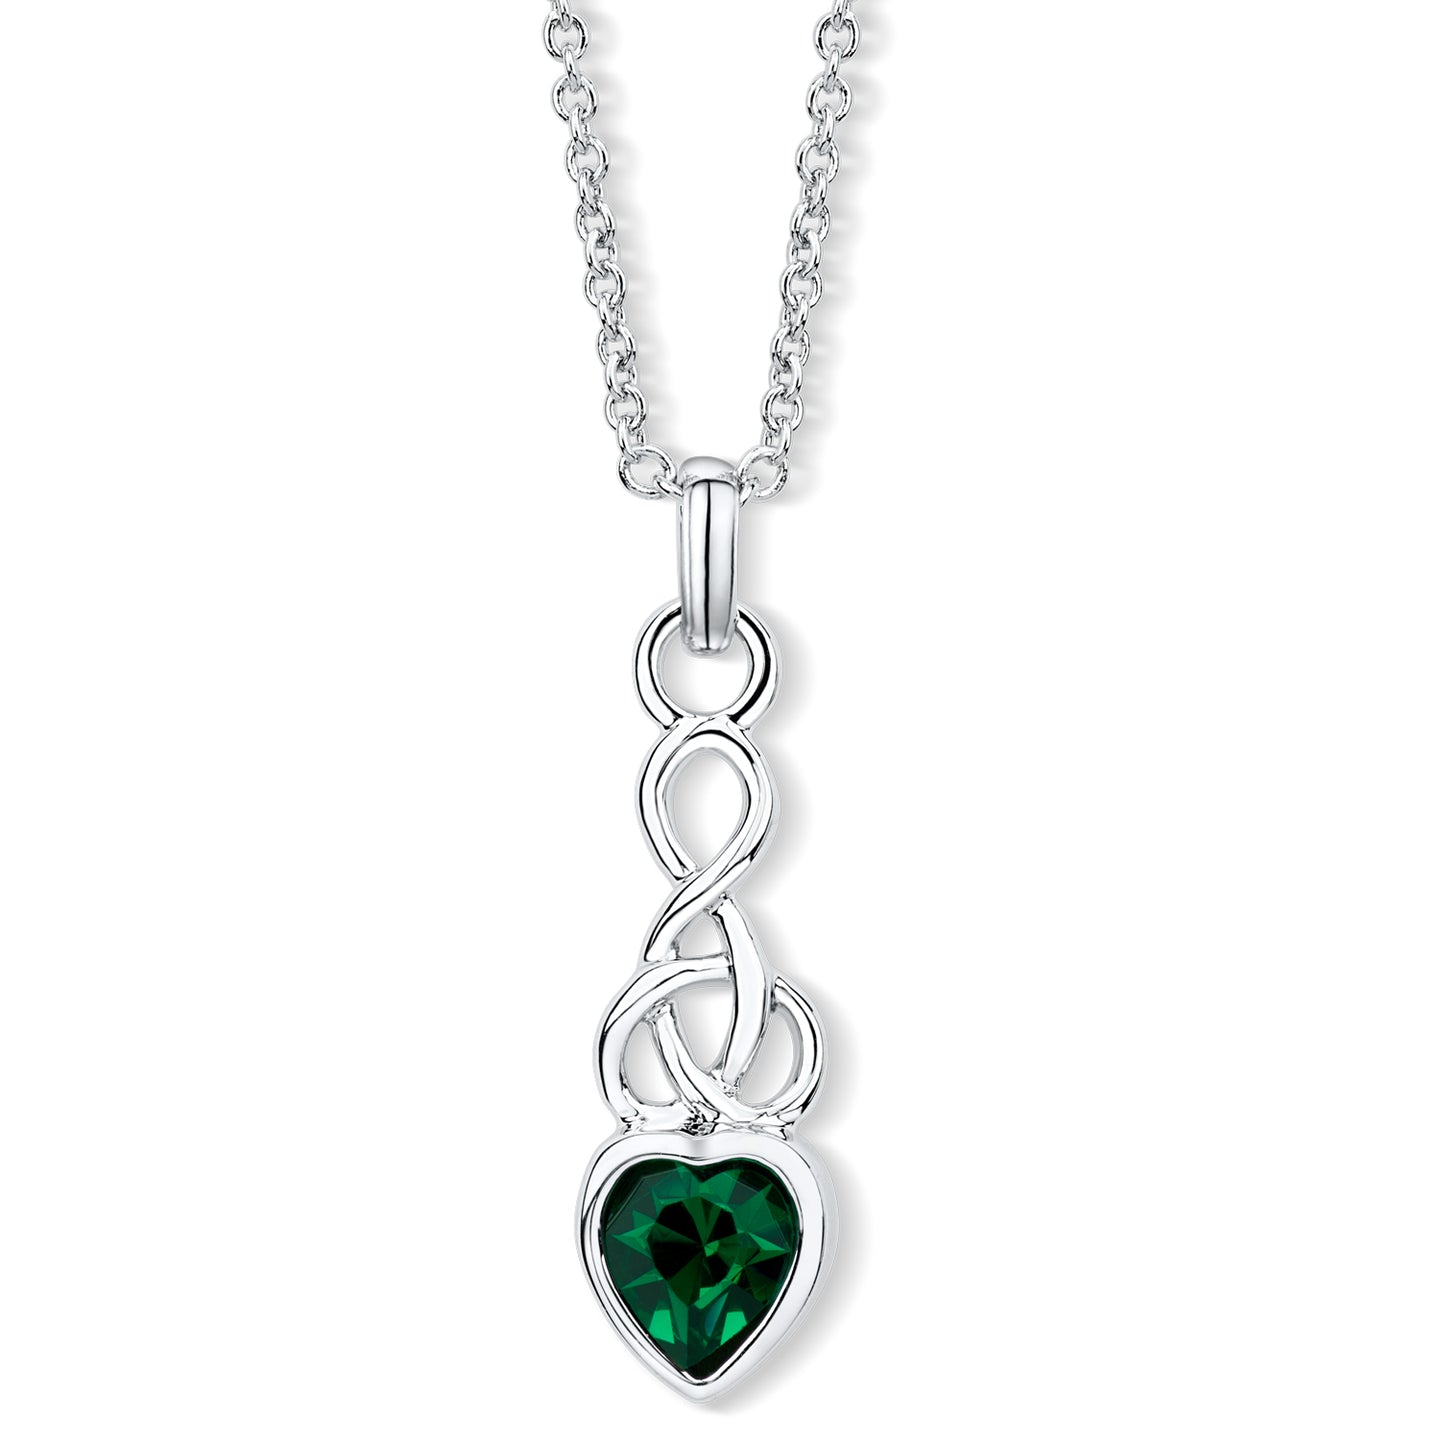 Celtic Heart Pendant with Emerald Crystal